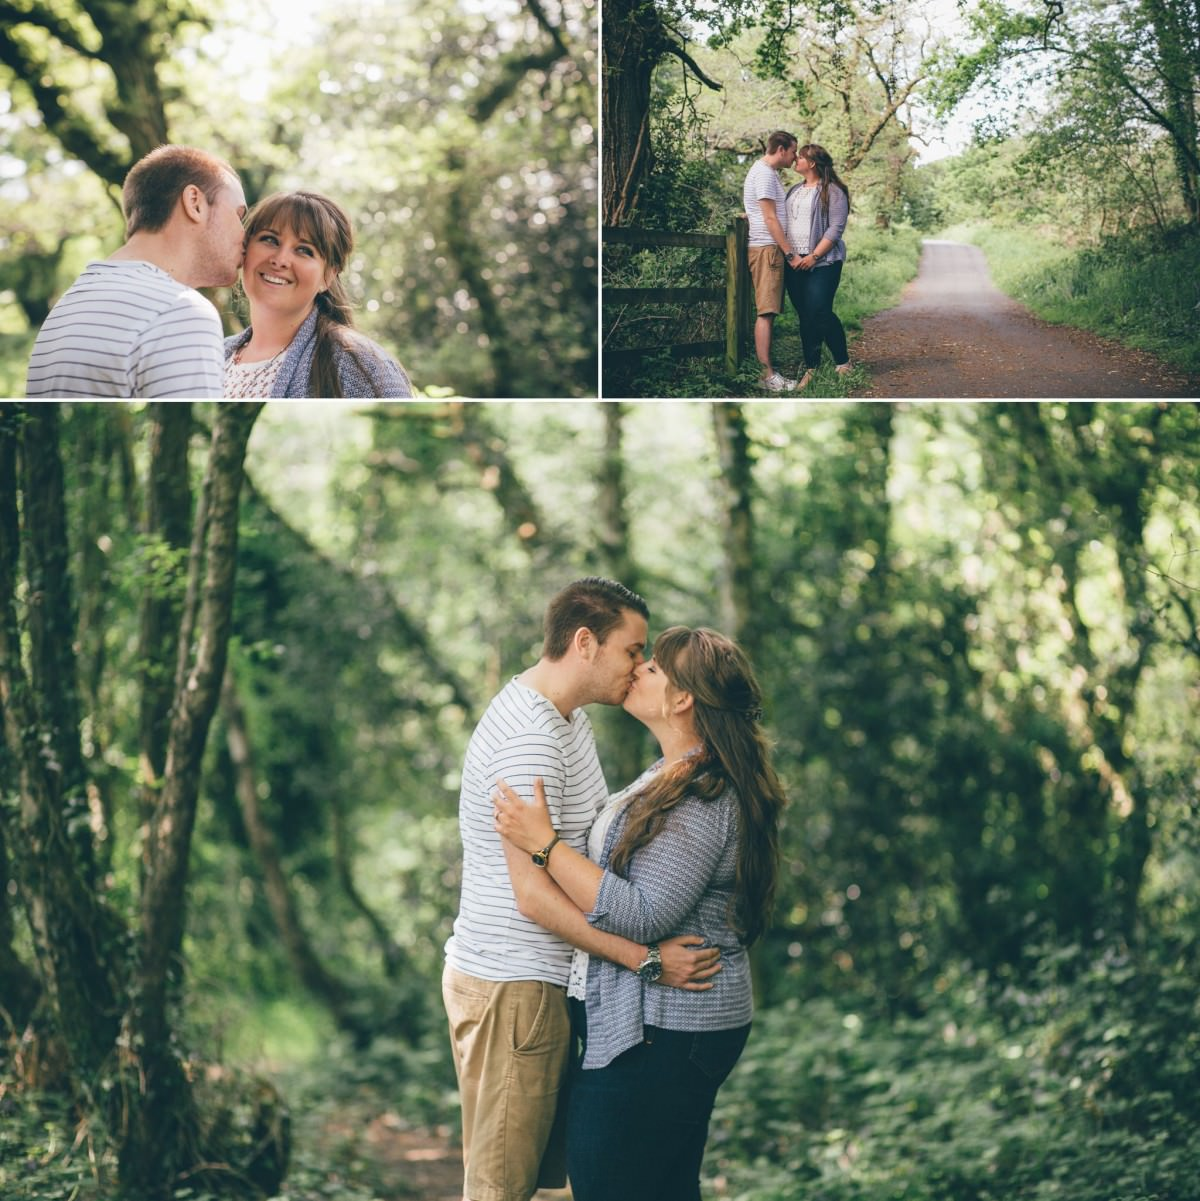 laura_sam_engagement_shoot_tonteg_miskin_manor_wedding_rachel_lambert_photography_ 14